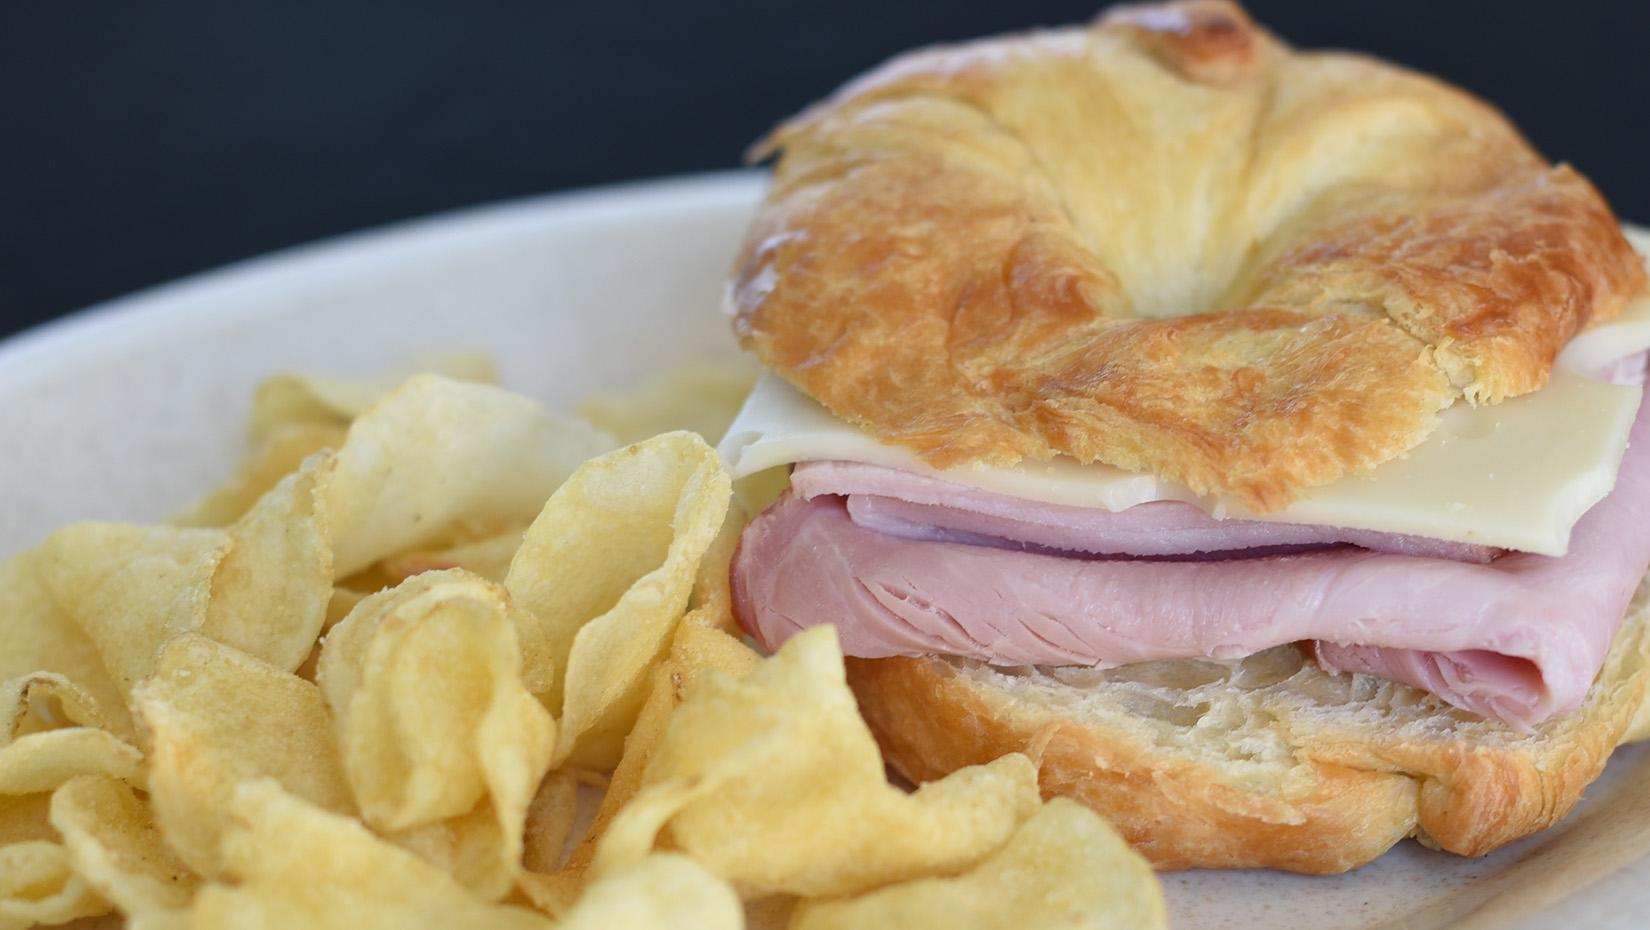 Ham sandwich with chips